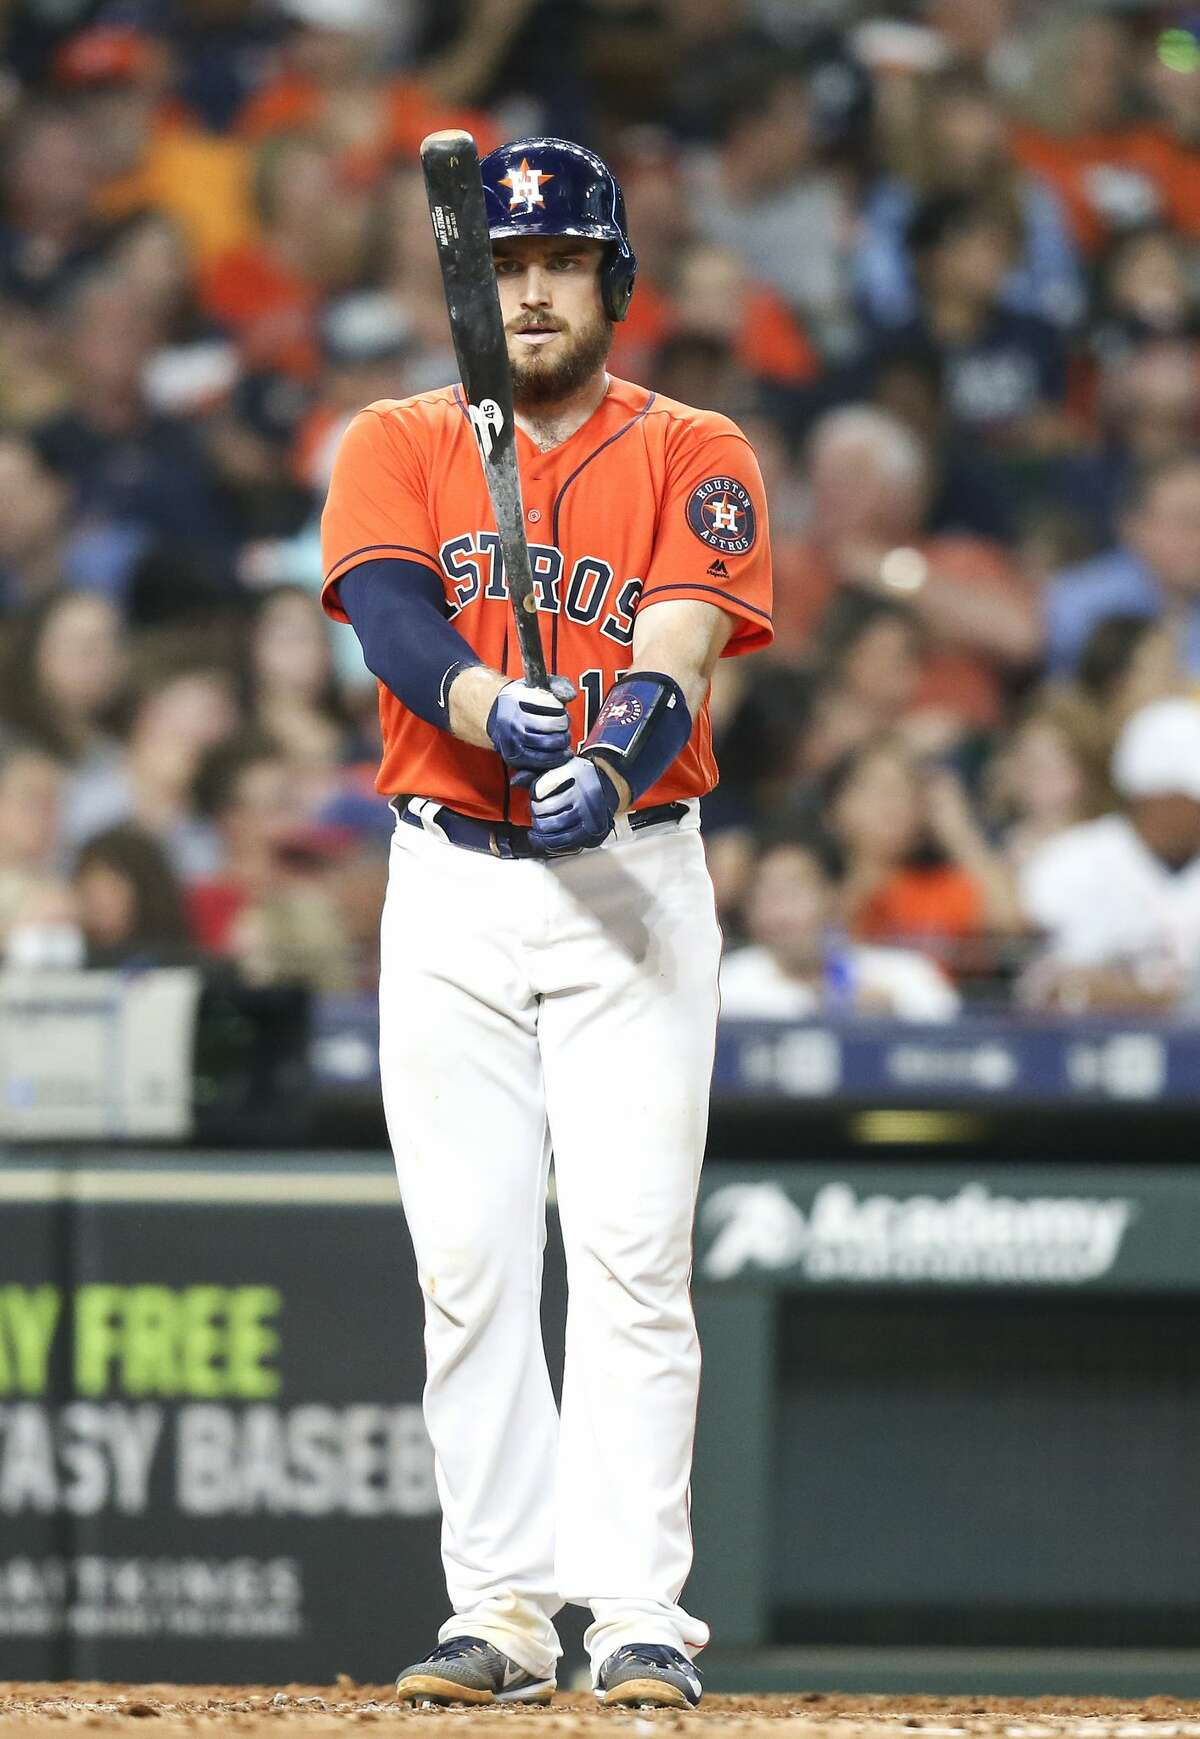 Houston Astros catcher Max Stassi (12) looks at his bad before stepping to the plate against the Detroit Tigers at Minute Maid Park on Friday, July 13, 2018 in Houston. Astros won the game 3-0. (Elizabeth Conley/Houston Chronicle)